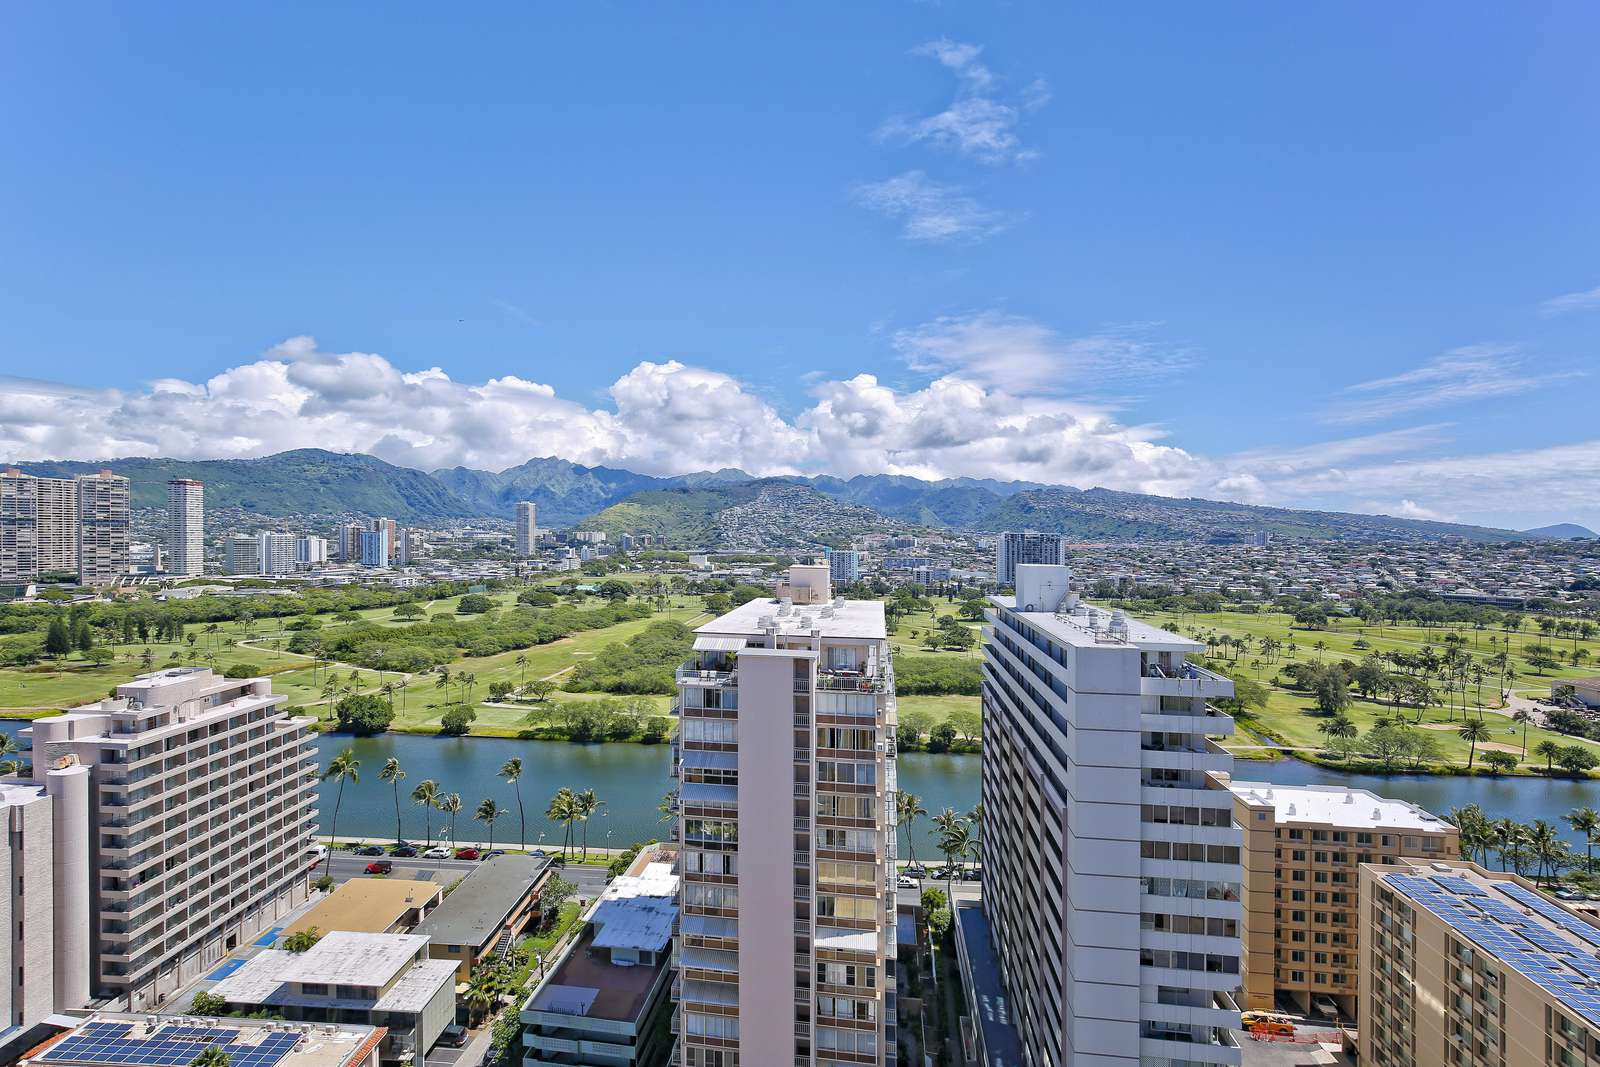 Views of the Mountains and Ala Wai Canal